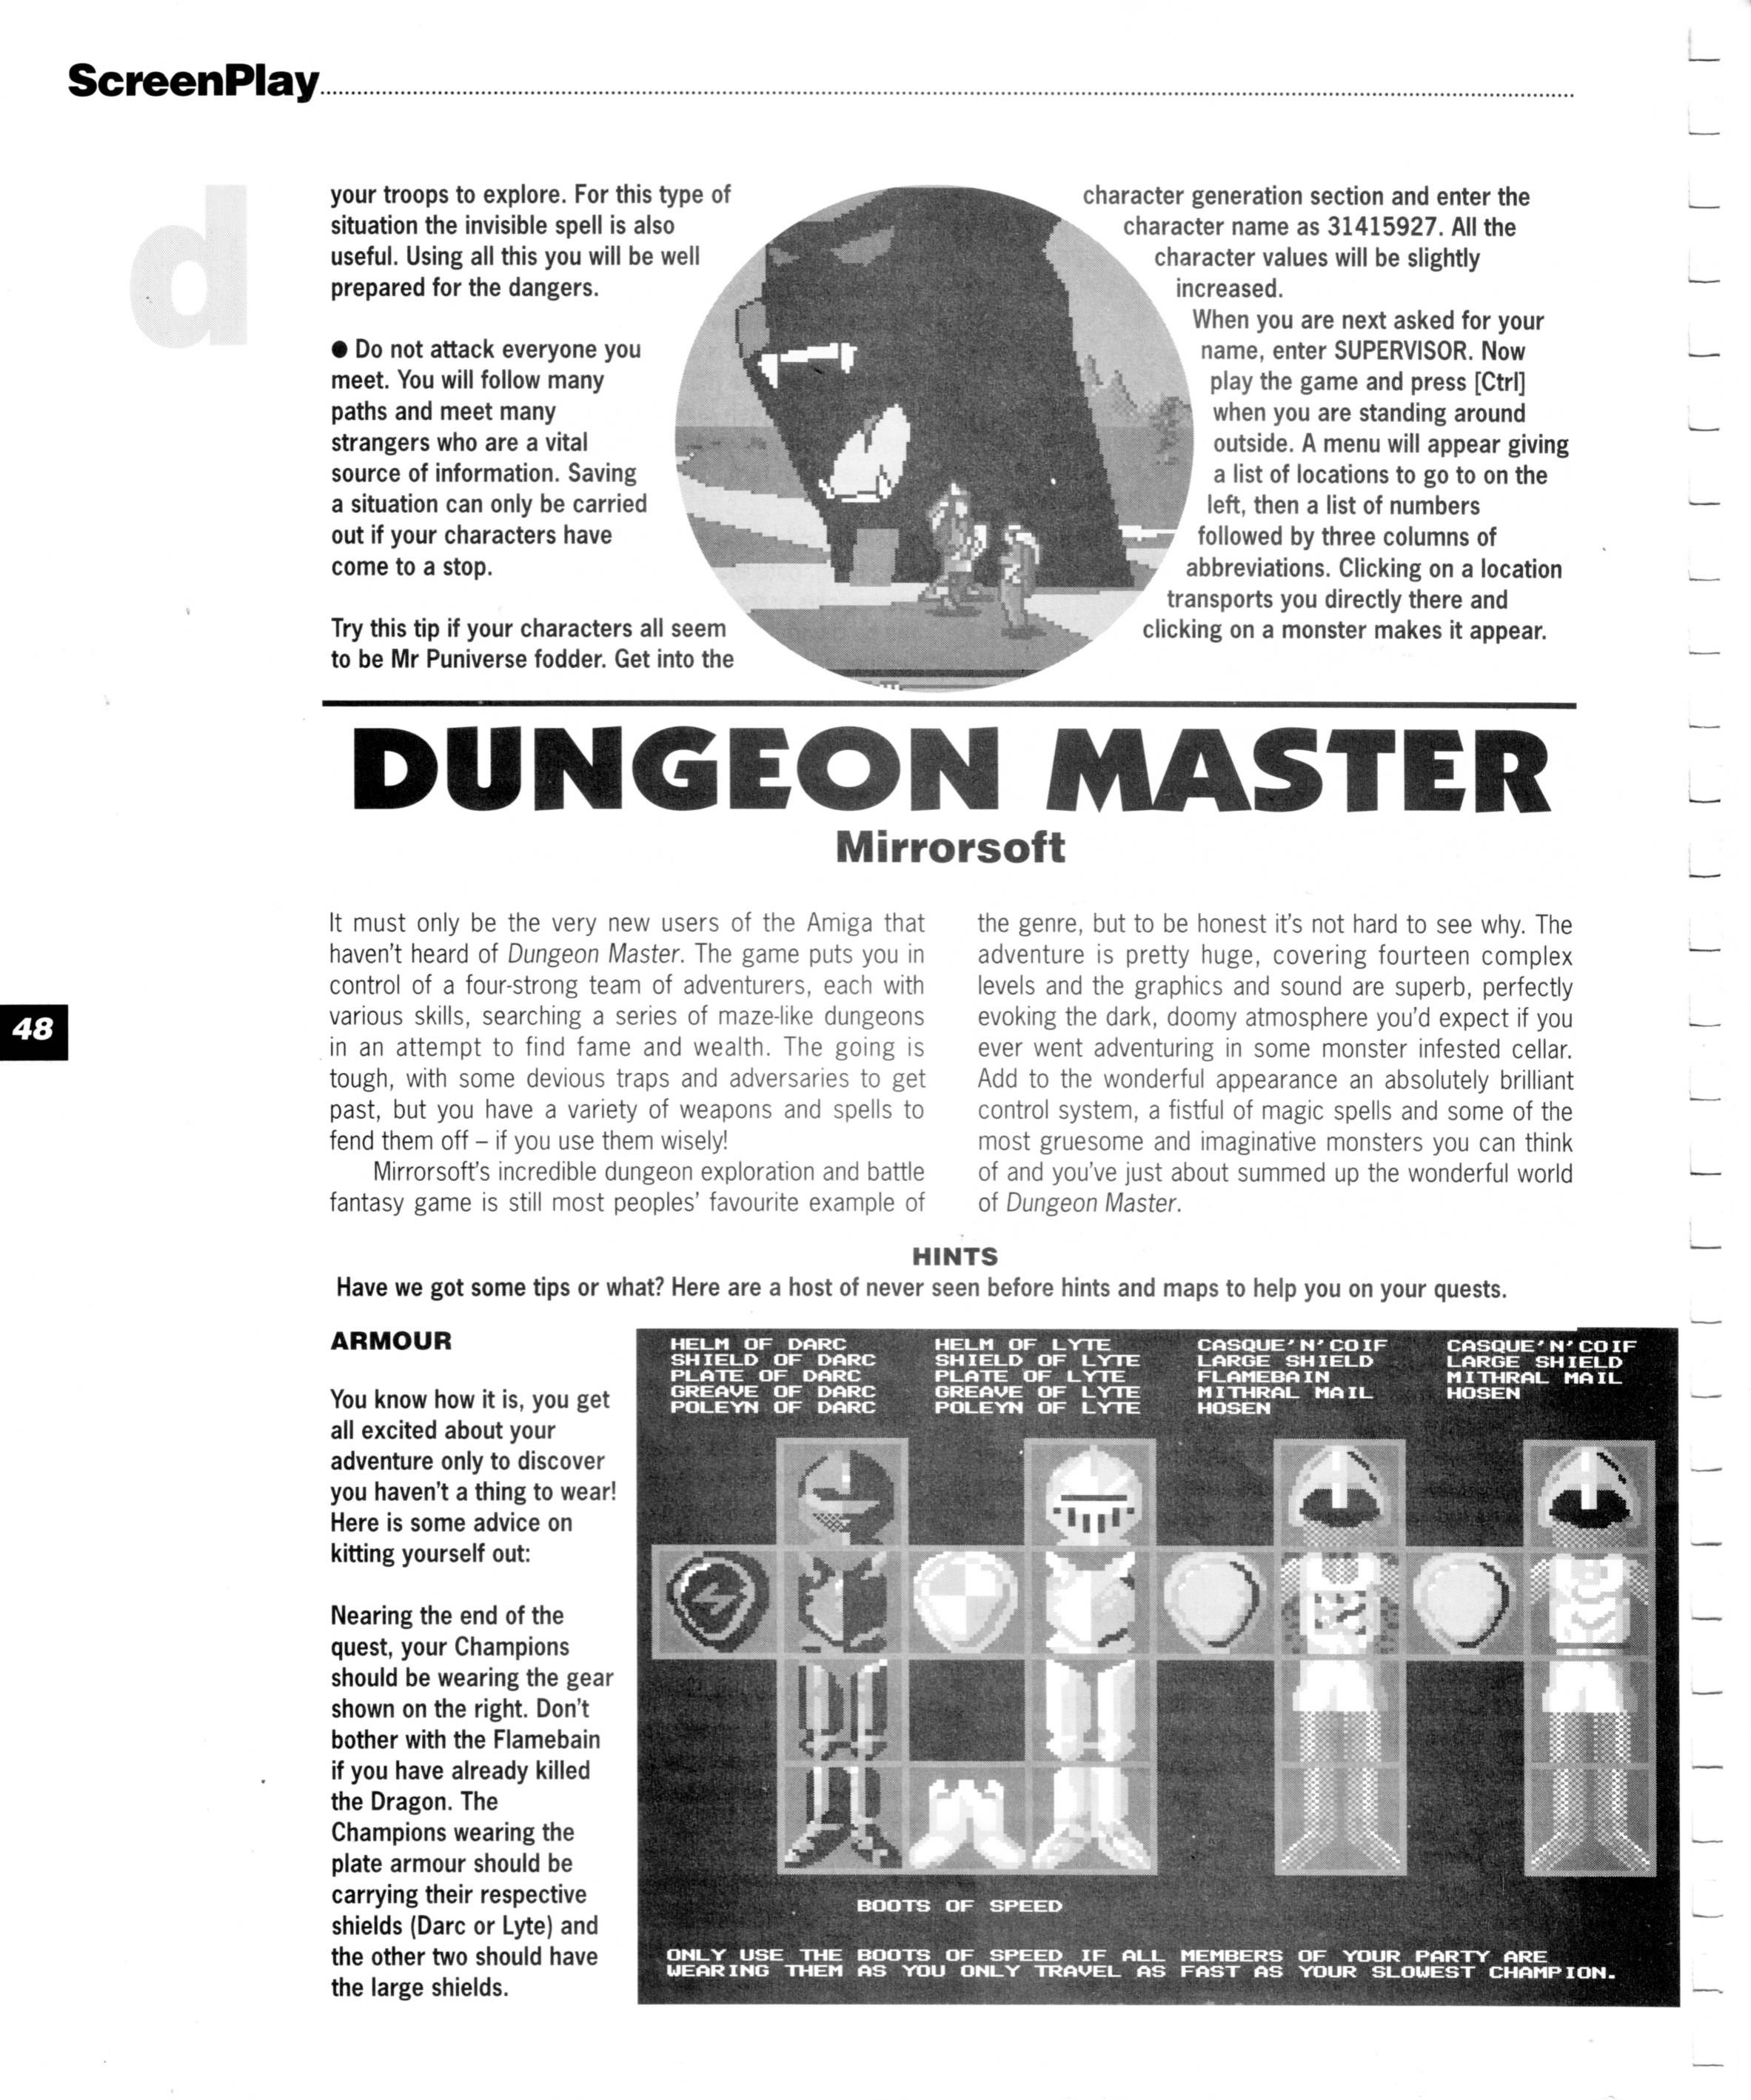 Dungeon Master for Amiga Guide published in British magazine 'Amiga Format Screenplay', 1990, Page 48